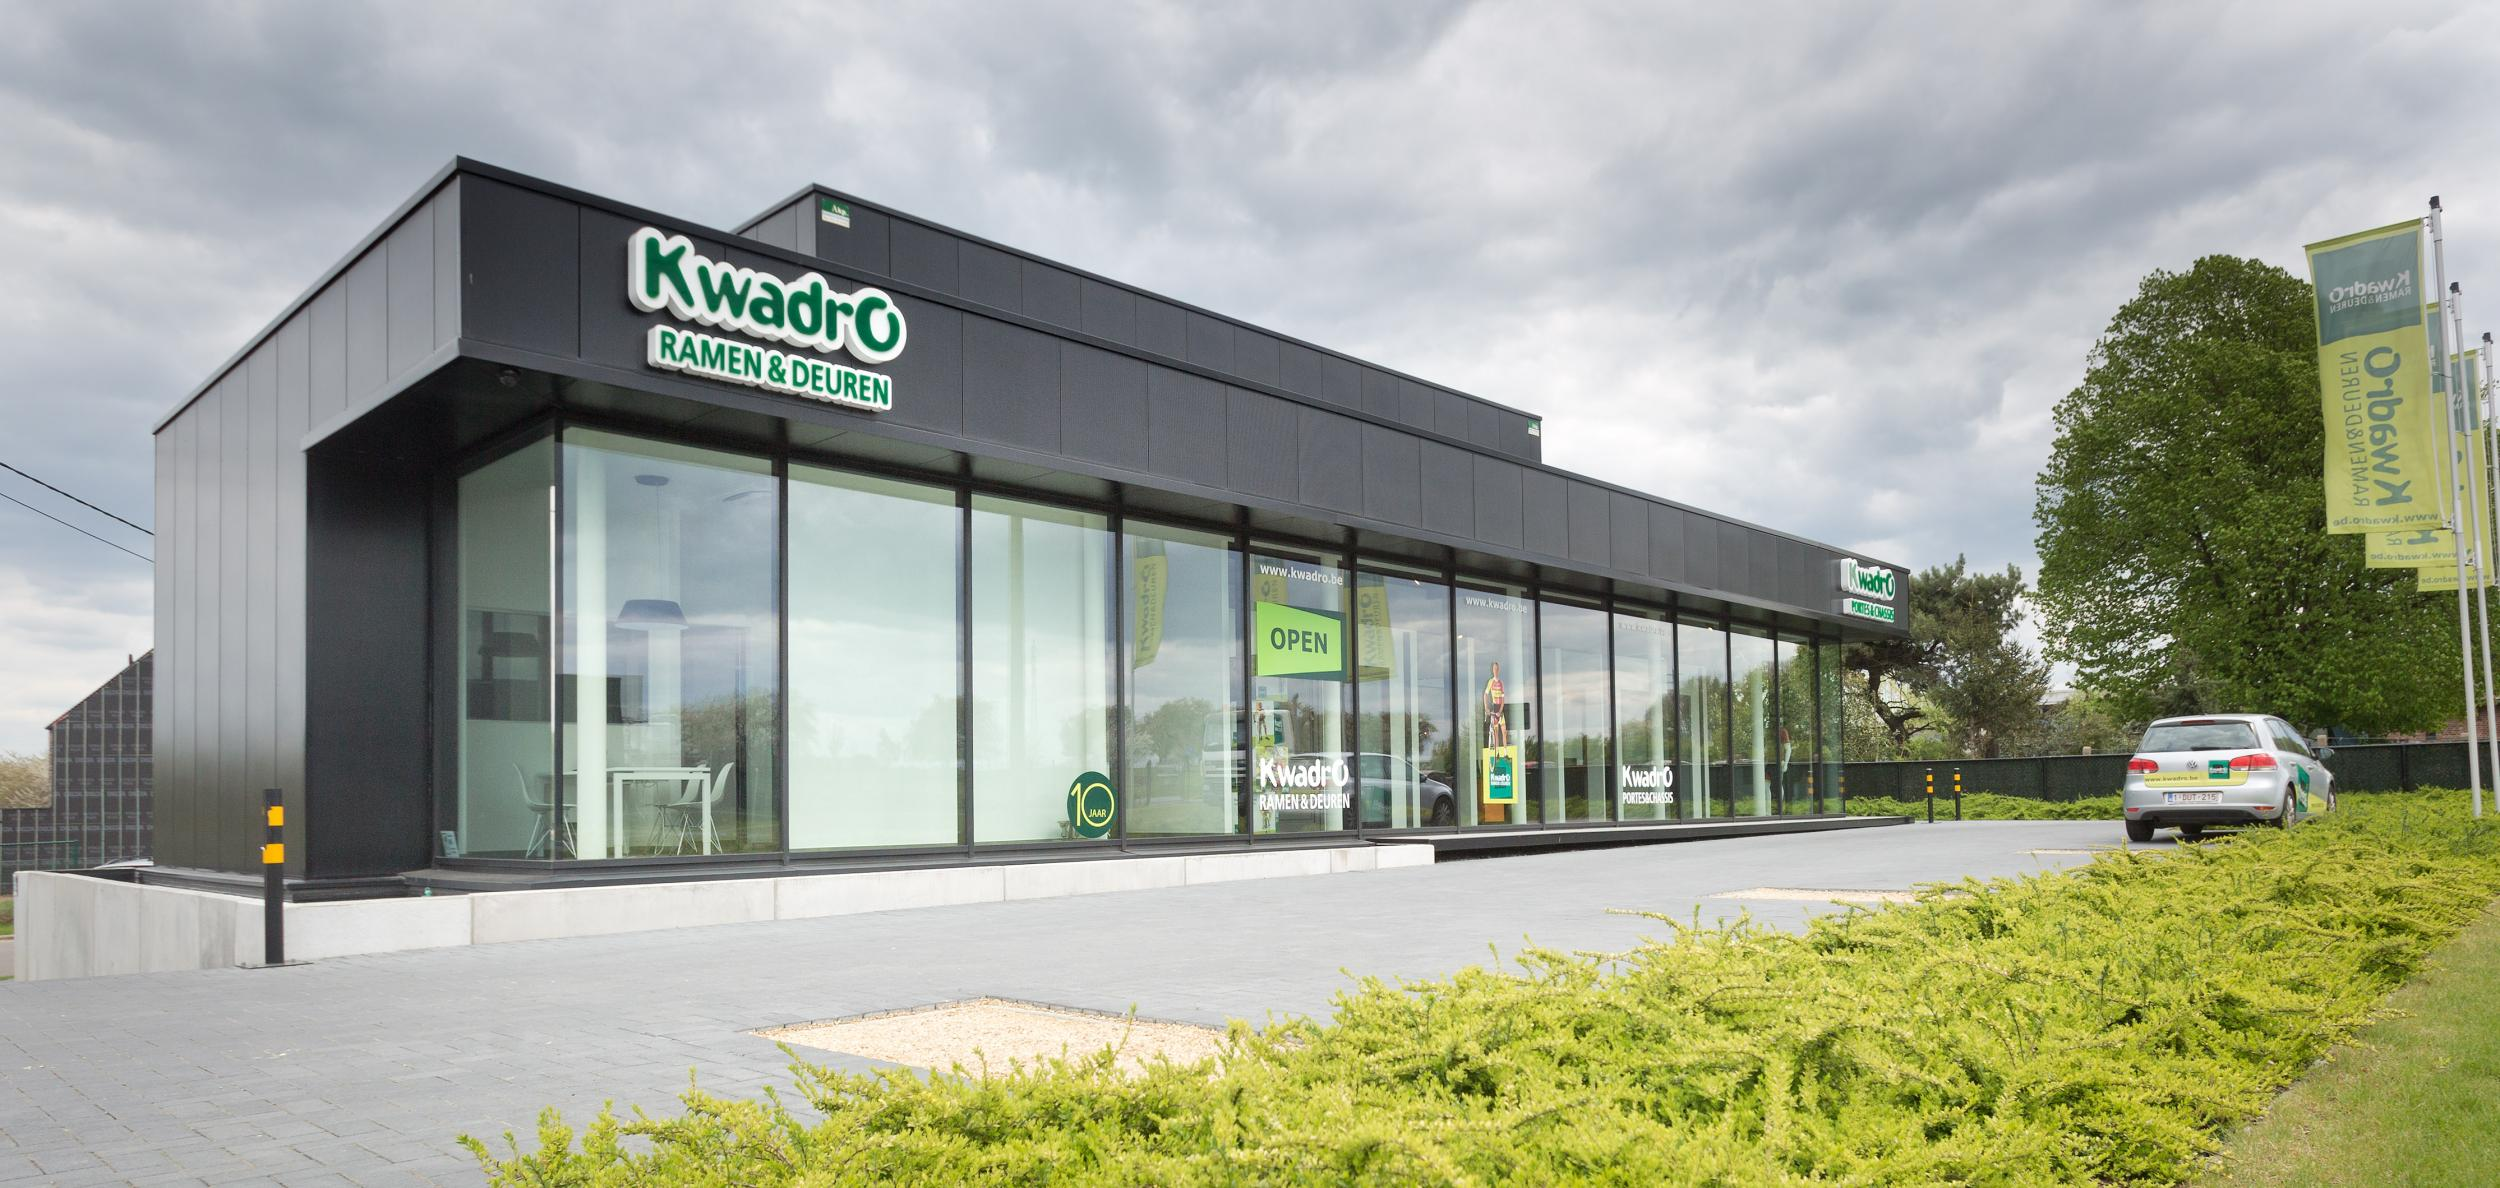 KwadrO Tongeren showroom